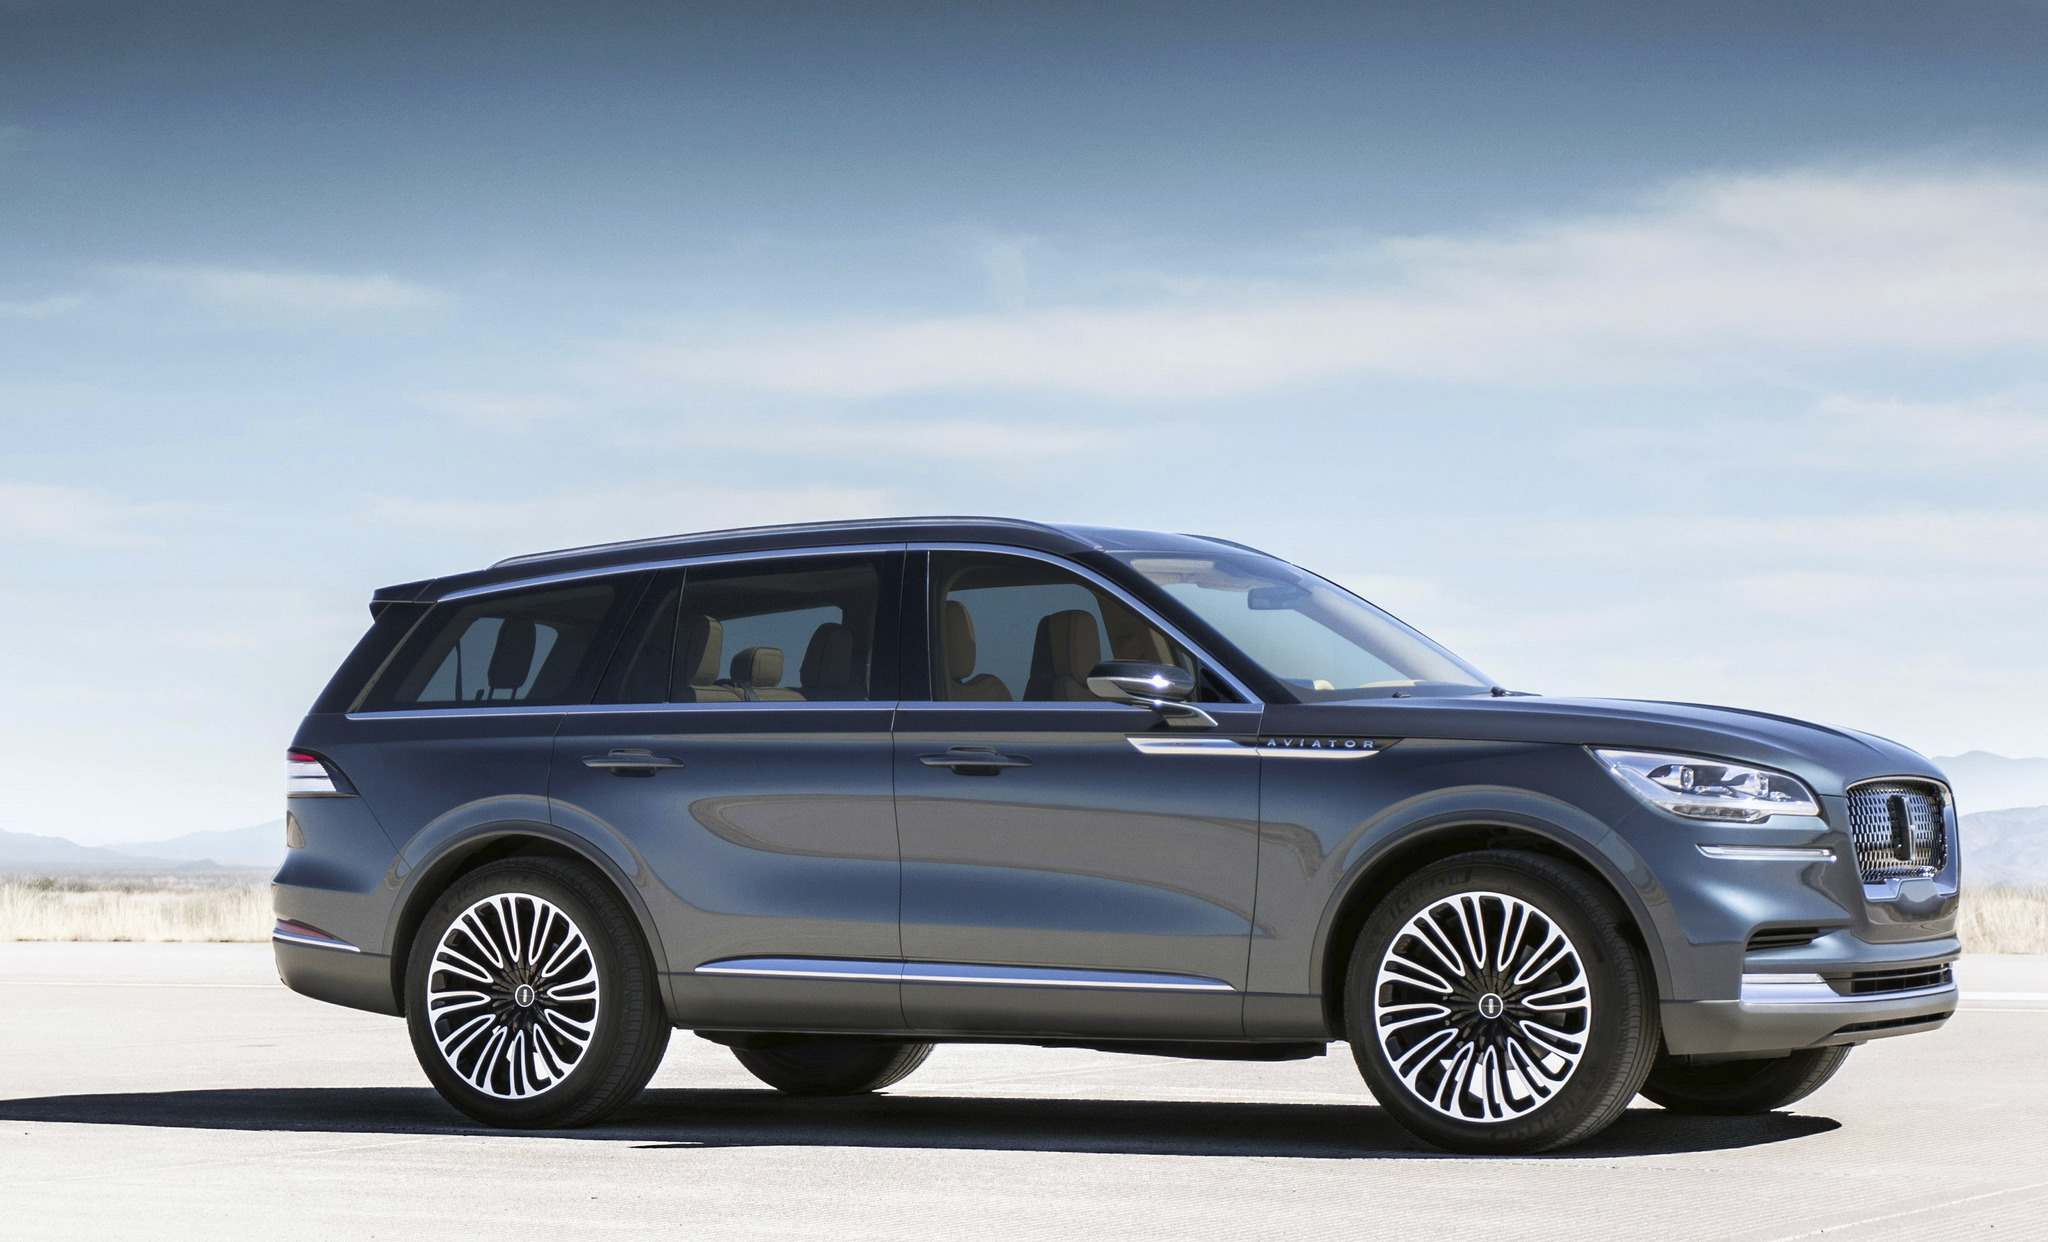 LincolnThe 2019 Lincoln Aviator will allow owners to unlock the doors and start the vehicle from their smartphone.